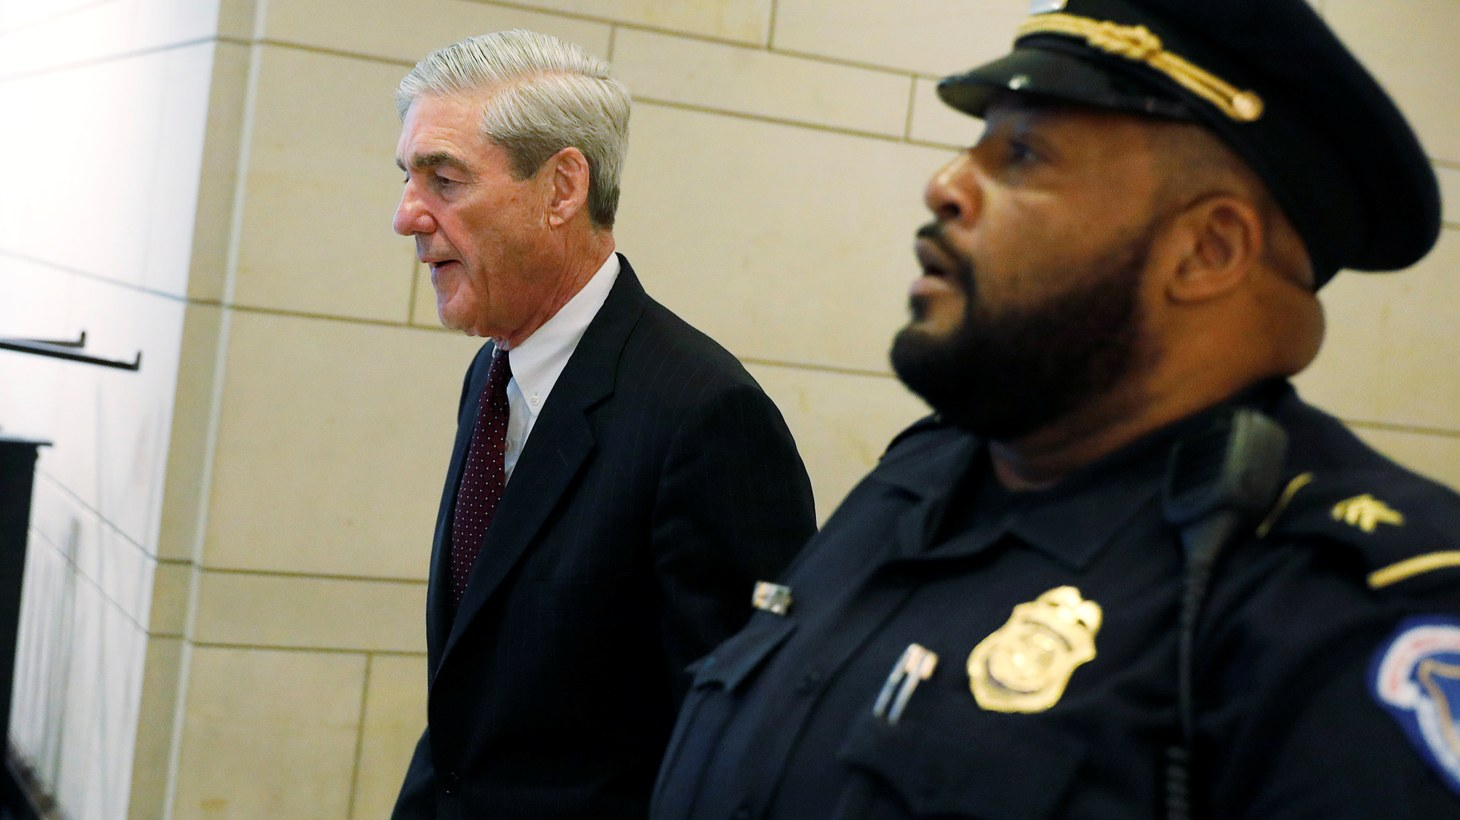 Special Counsel Robert Mueller departs after briefing the U.S. House Intelligence Committee on his investigation of potential collusion between Russia and the Trump campaign on Capitol Hill in Washington, U.S., June 20, 2017.